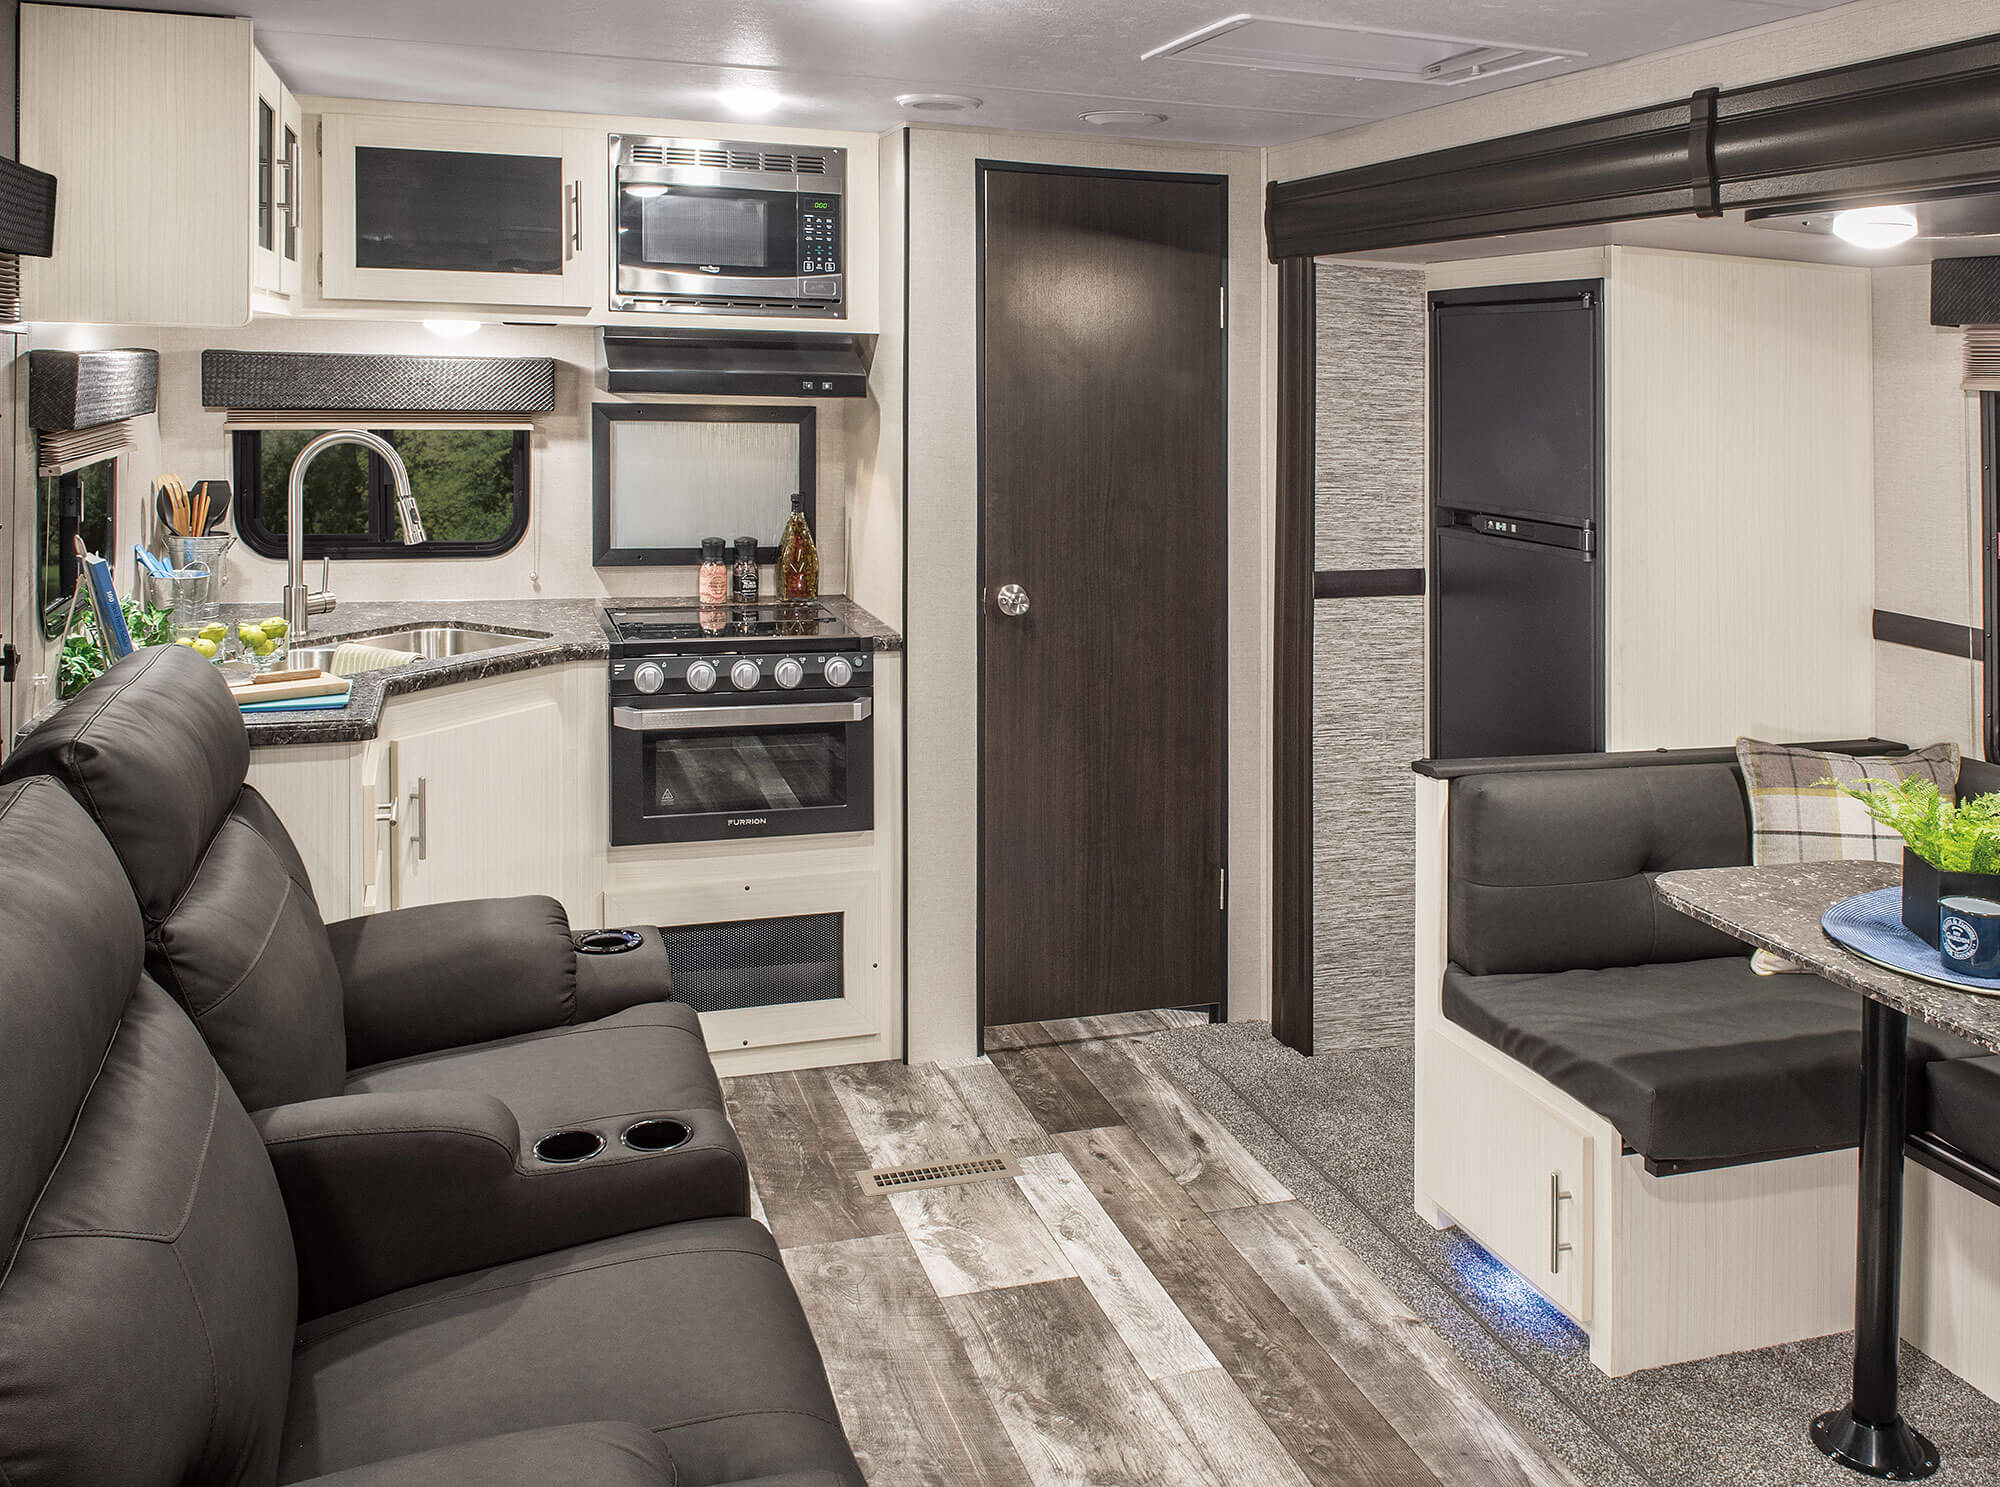 2019 Best In Show Rv News Says It S The Venture Stratus Sr261vrk Travel Trailer Roaming Times